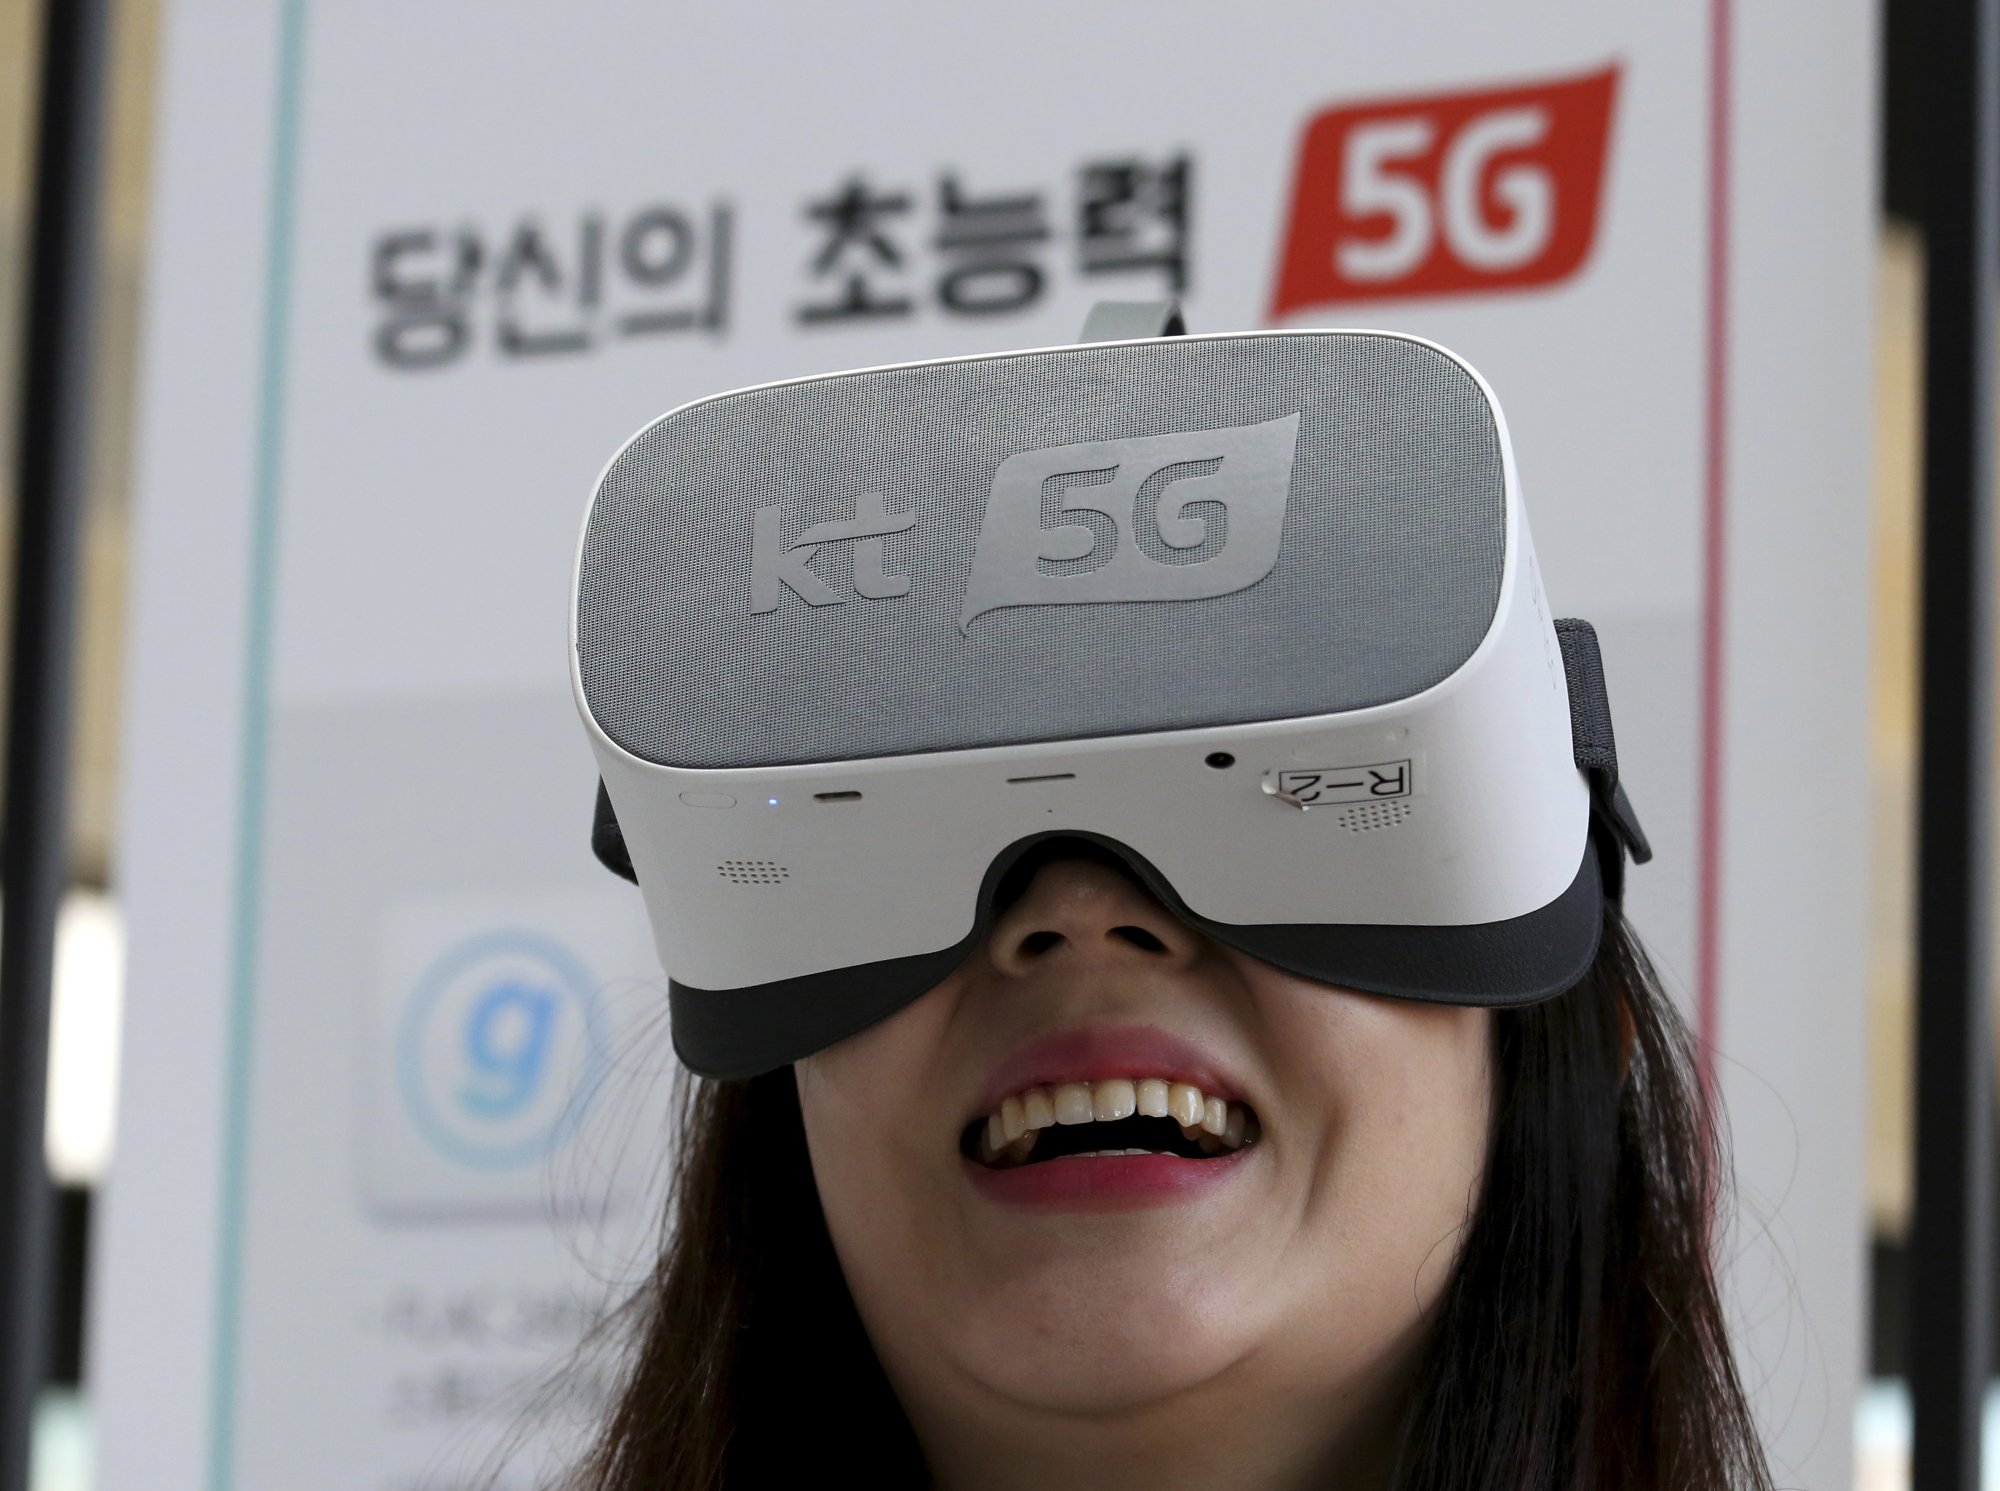 Samsung releases the world's first 5G phone in South Korea